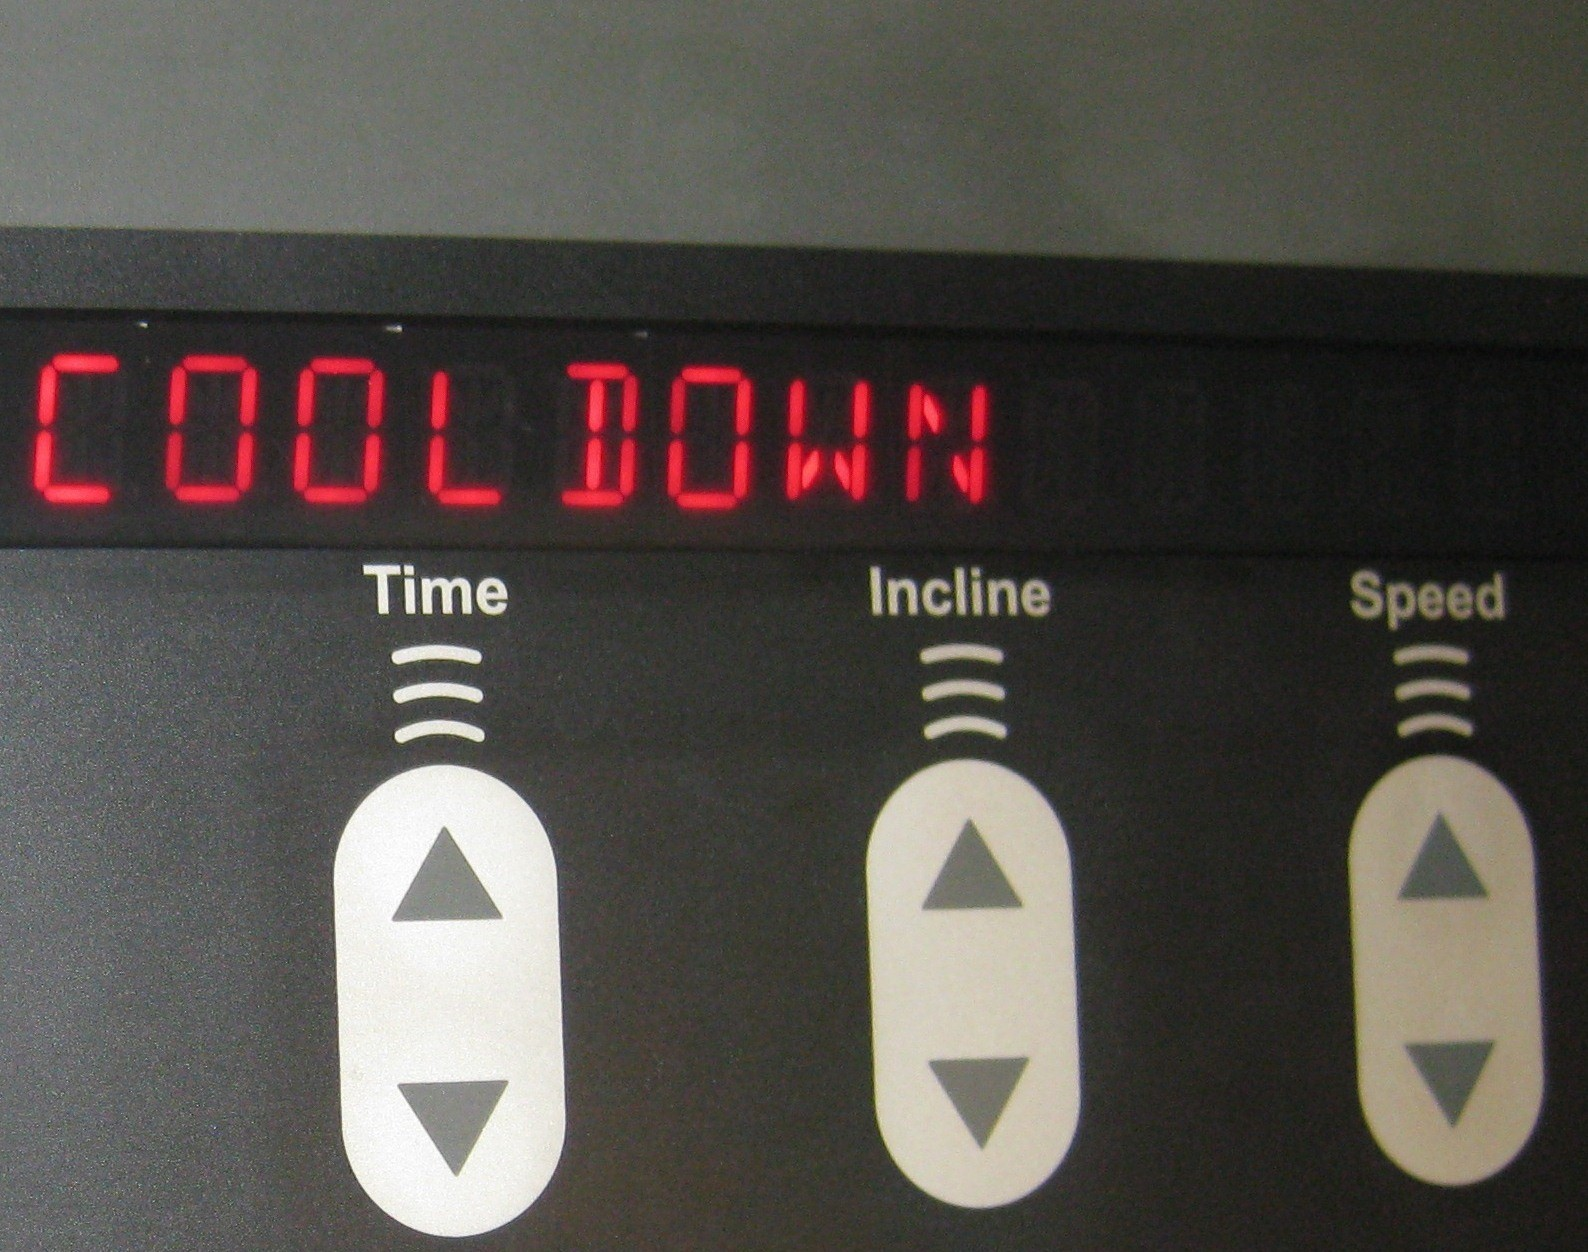 Cool Down on the Treadmill